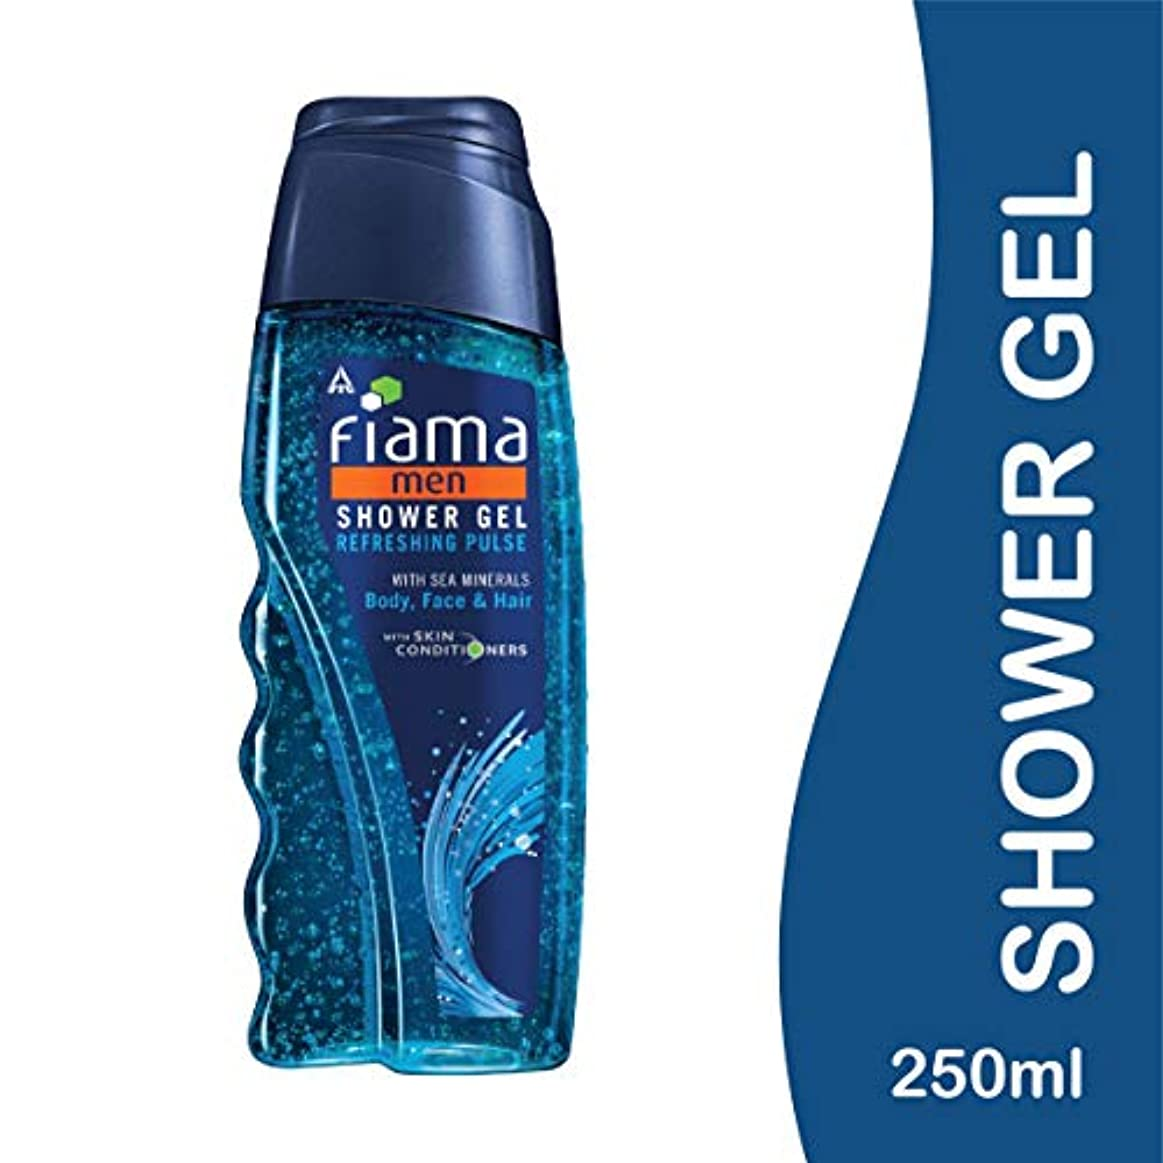 とにかく無駄スポットFiama Men Refreshing Pulse Shower Gel, 250ml